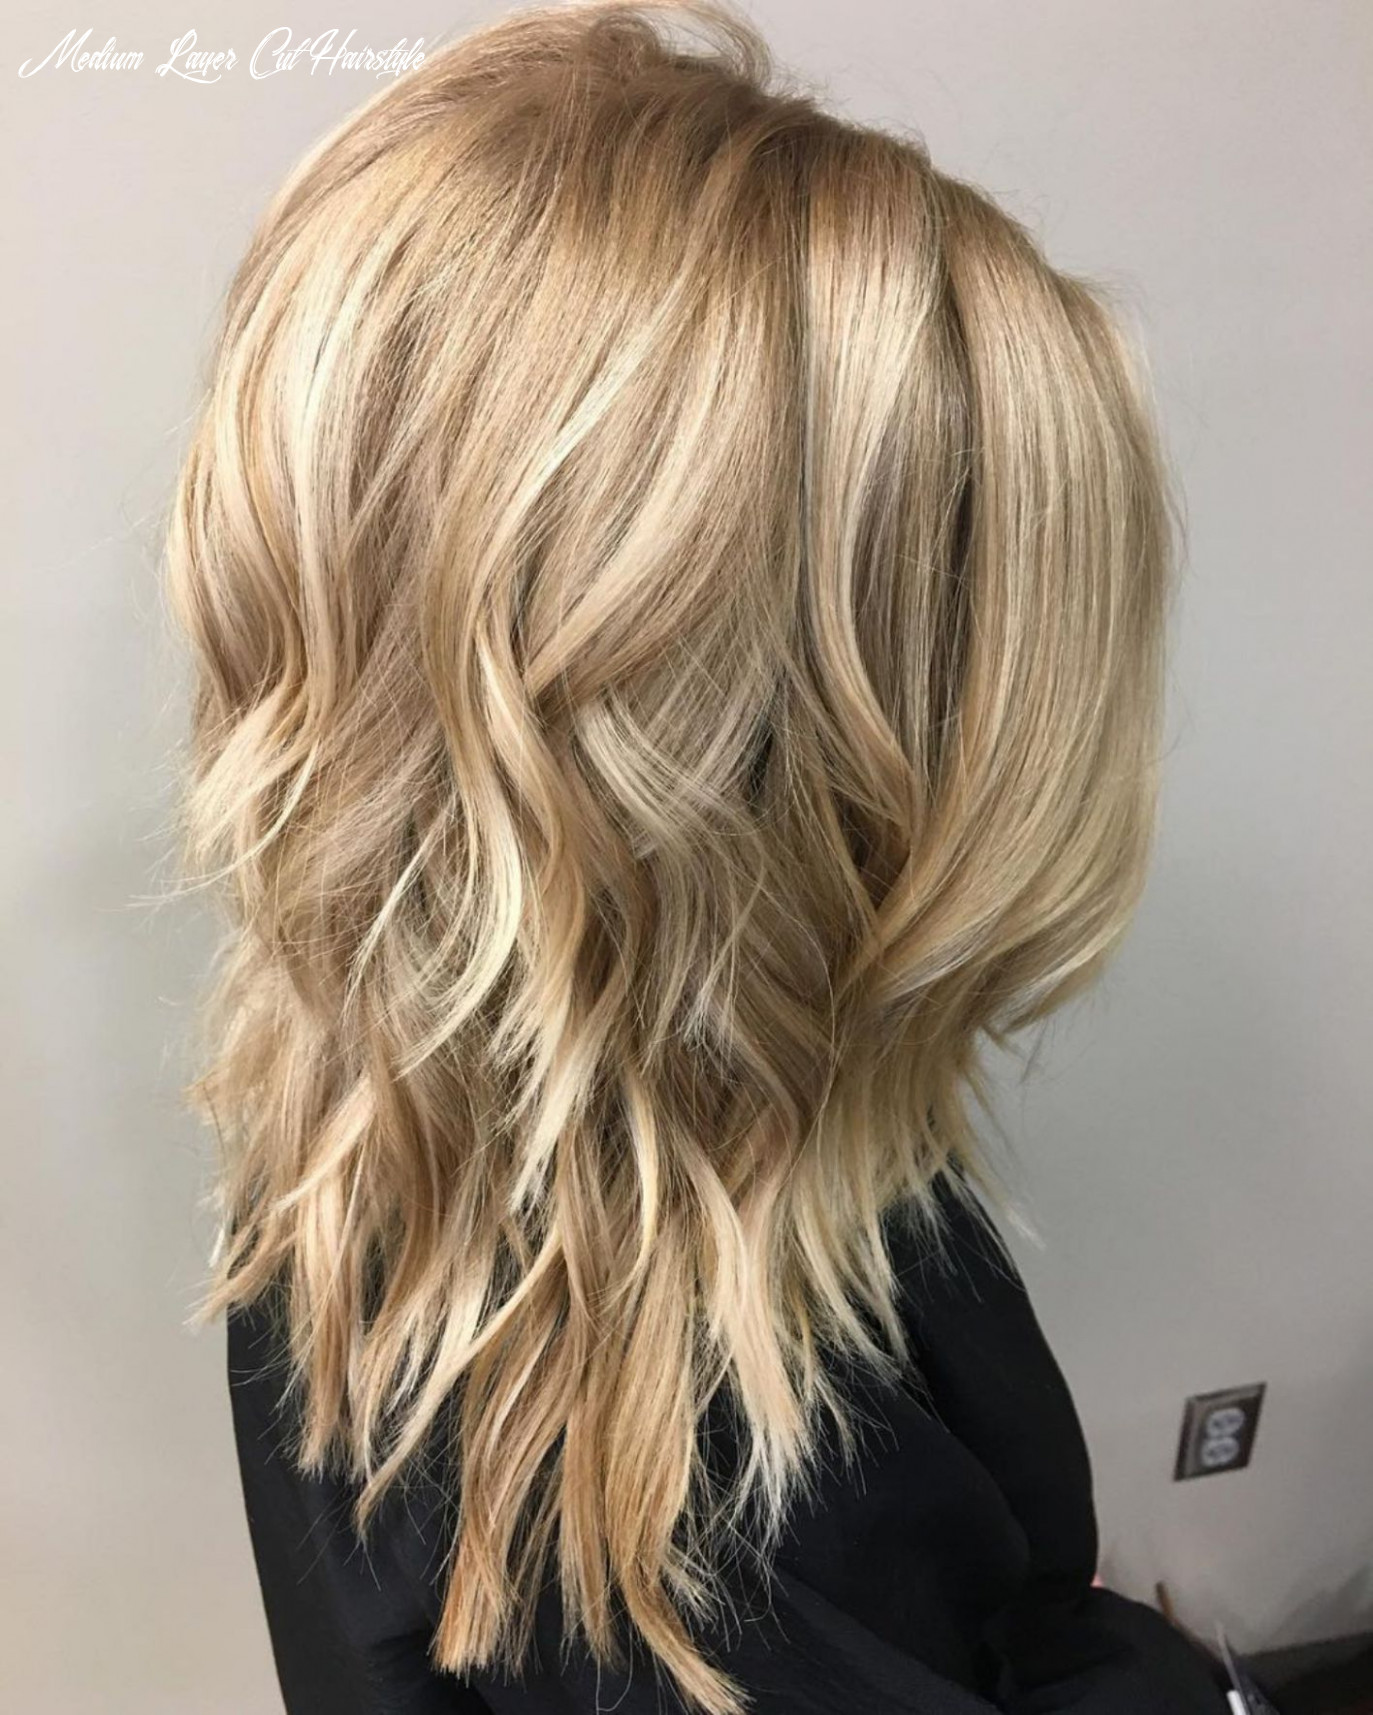 Pin on hairstyles medium layer cut hairstyle